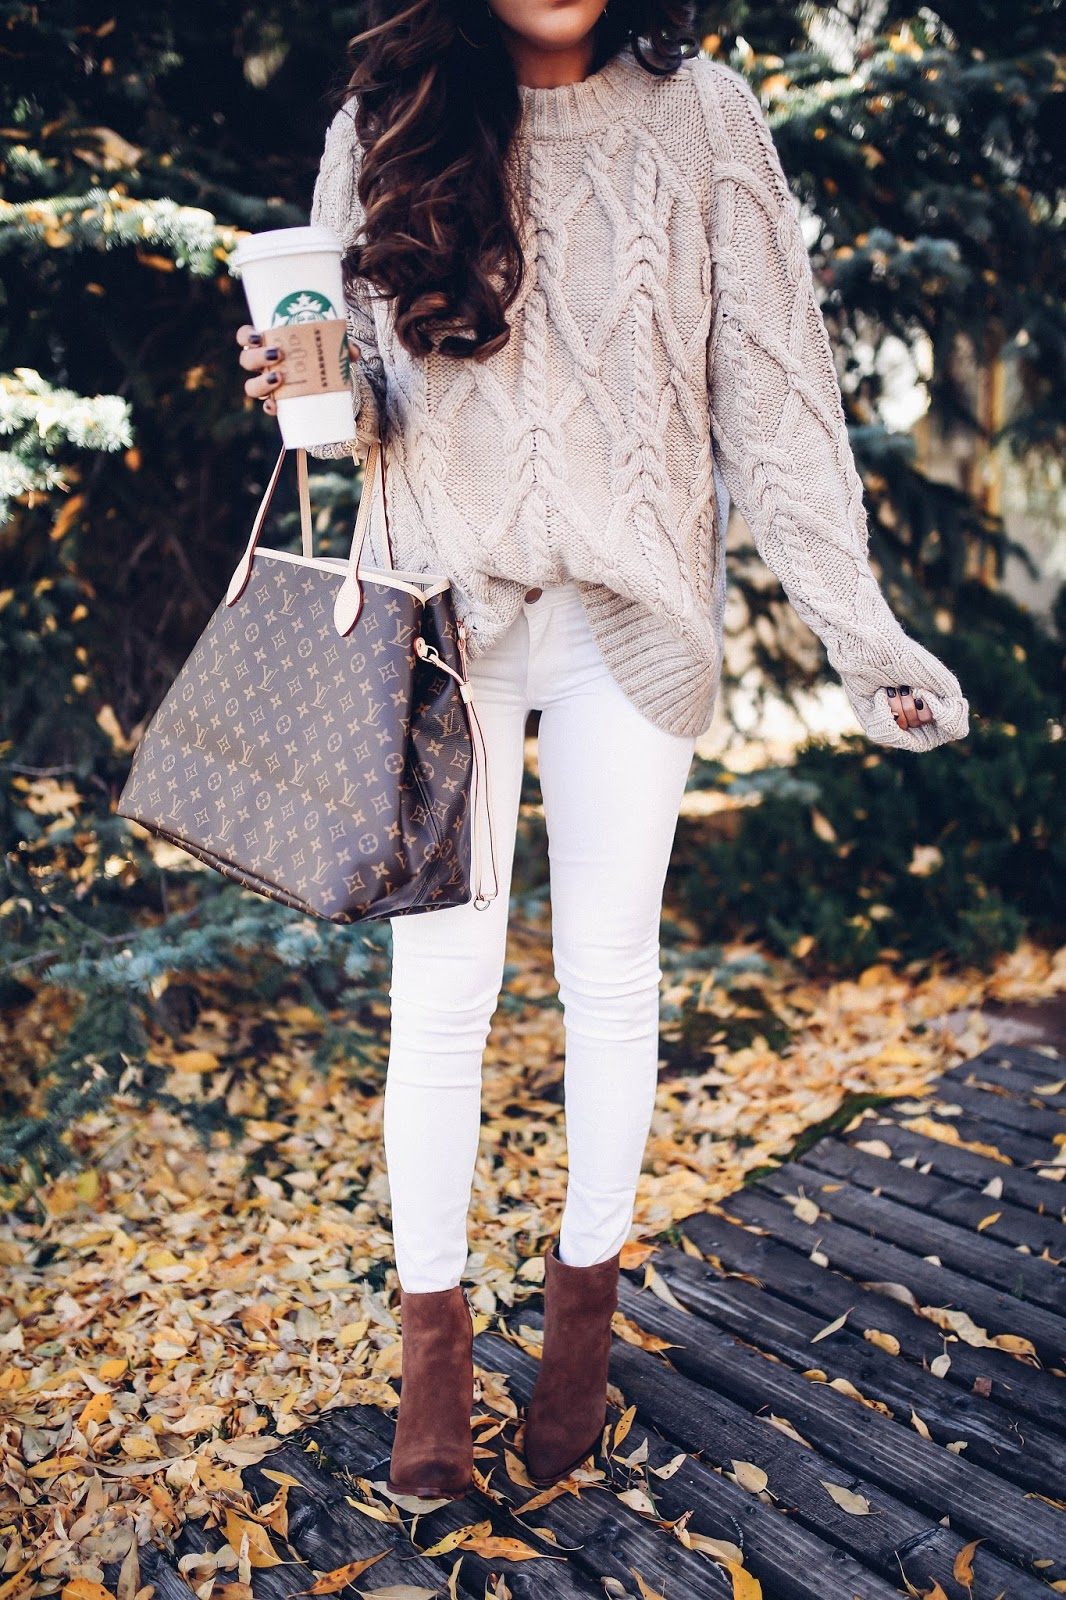 Shopbop sale fall 2019, fall fashion 2019 pinterest outfits,emily gemma, Louis Vuitton neverfull GM, oversized sweaters with white jeans, booties fall 2019, cute booties outfits fall 2019 pinterest, best fall outfits fashion bloggers | Major ShopBop Sale Alert‼️[25% Off My Most Popular Outfits!] by popular Oklahoma fashion blog, The Sweetest Thing: image of a woman wearing ShopBop white denim and brown suede booties.